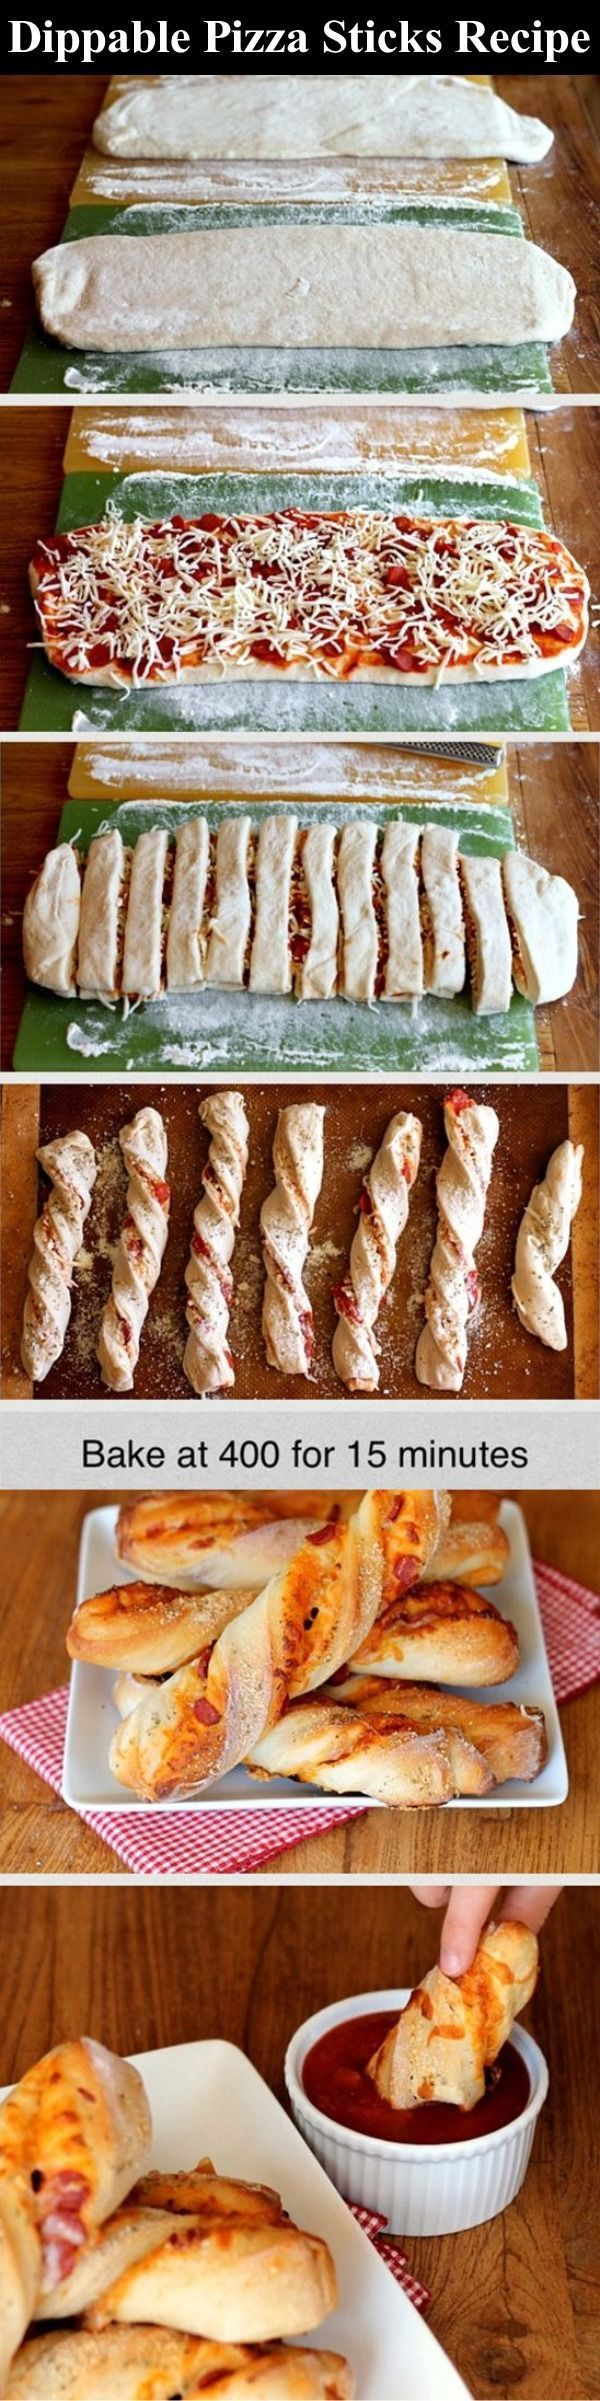 Dippable Pizza Sticks Recipe